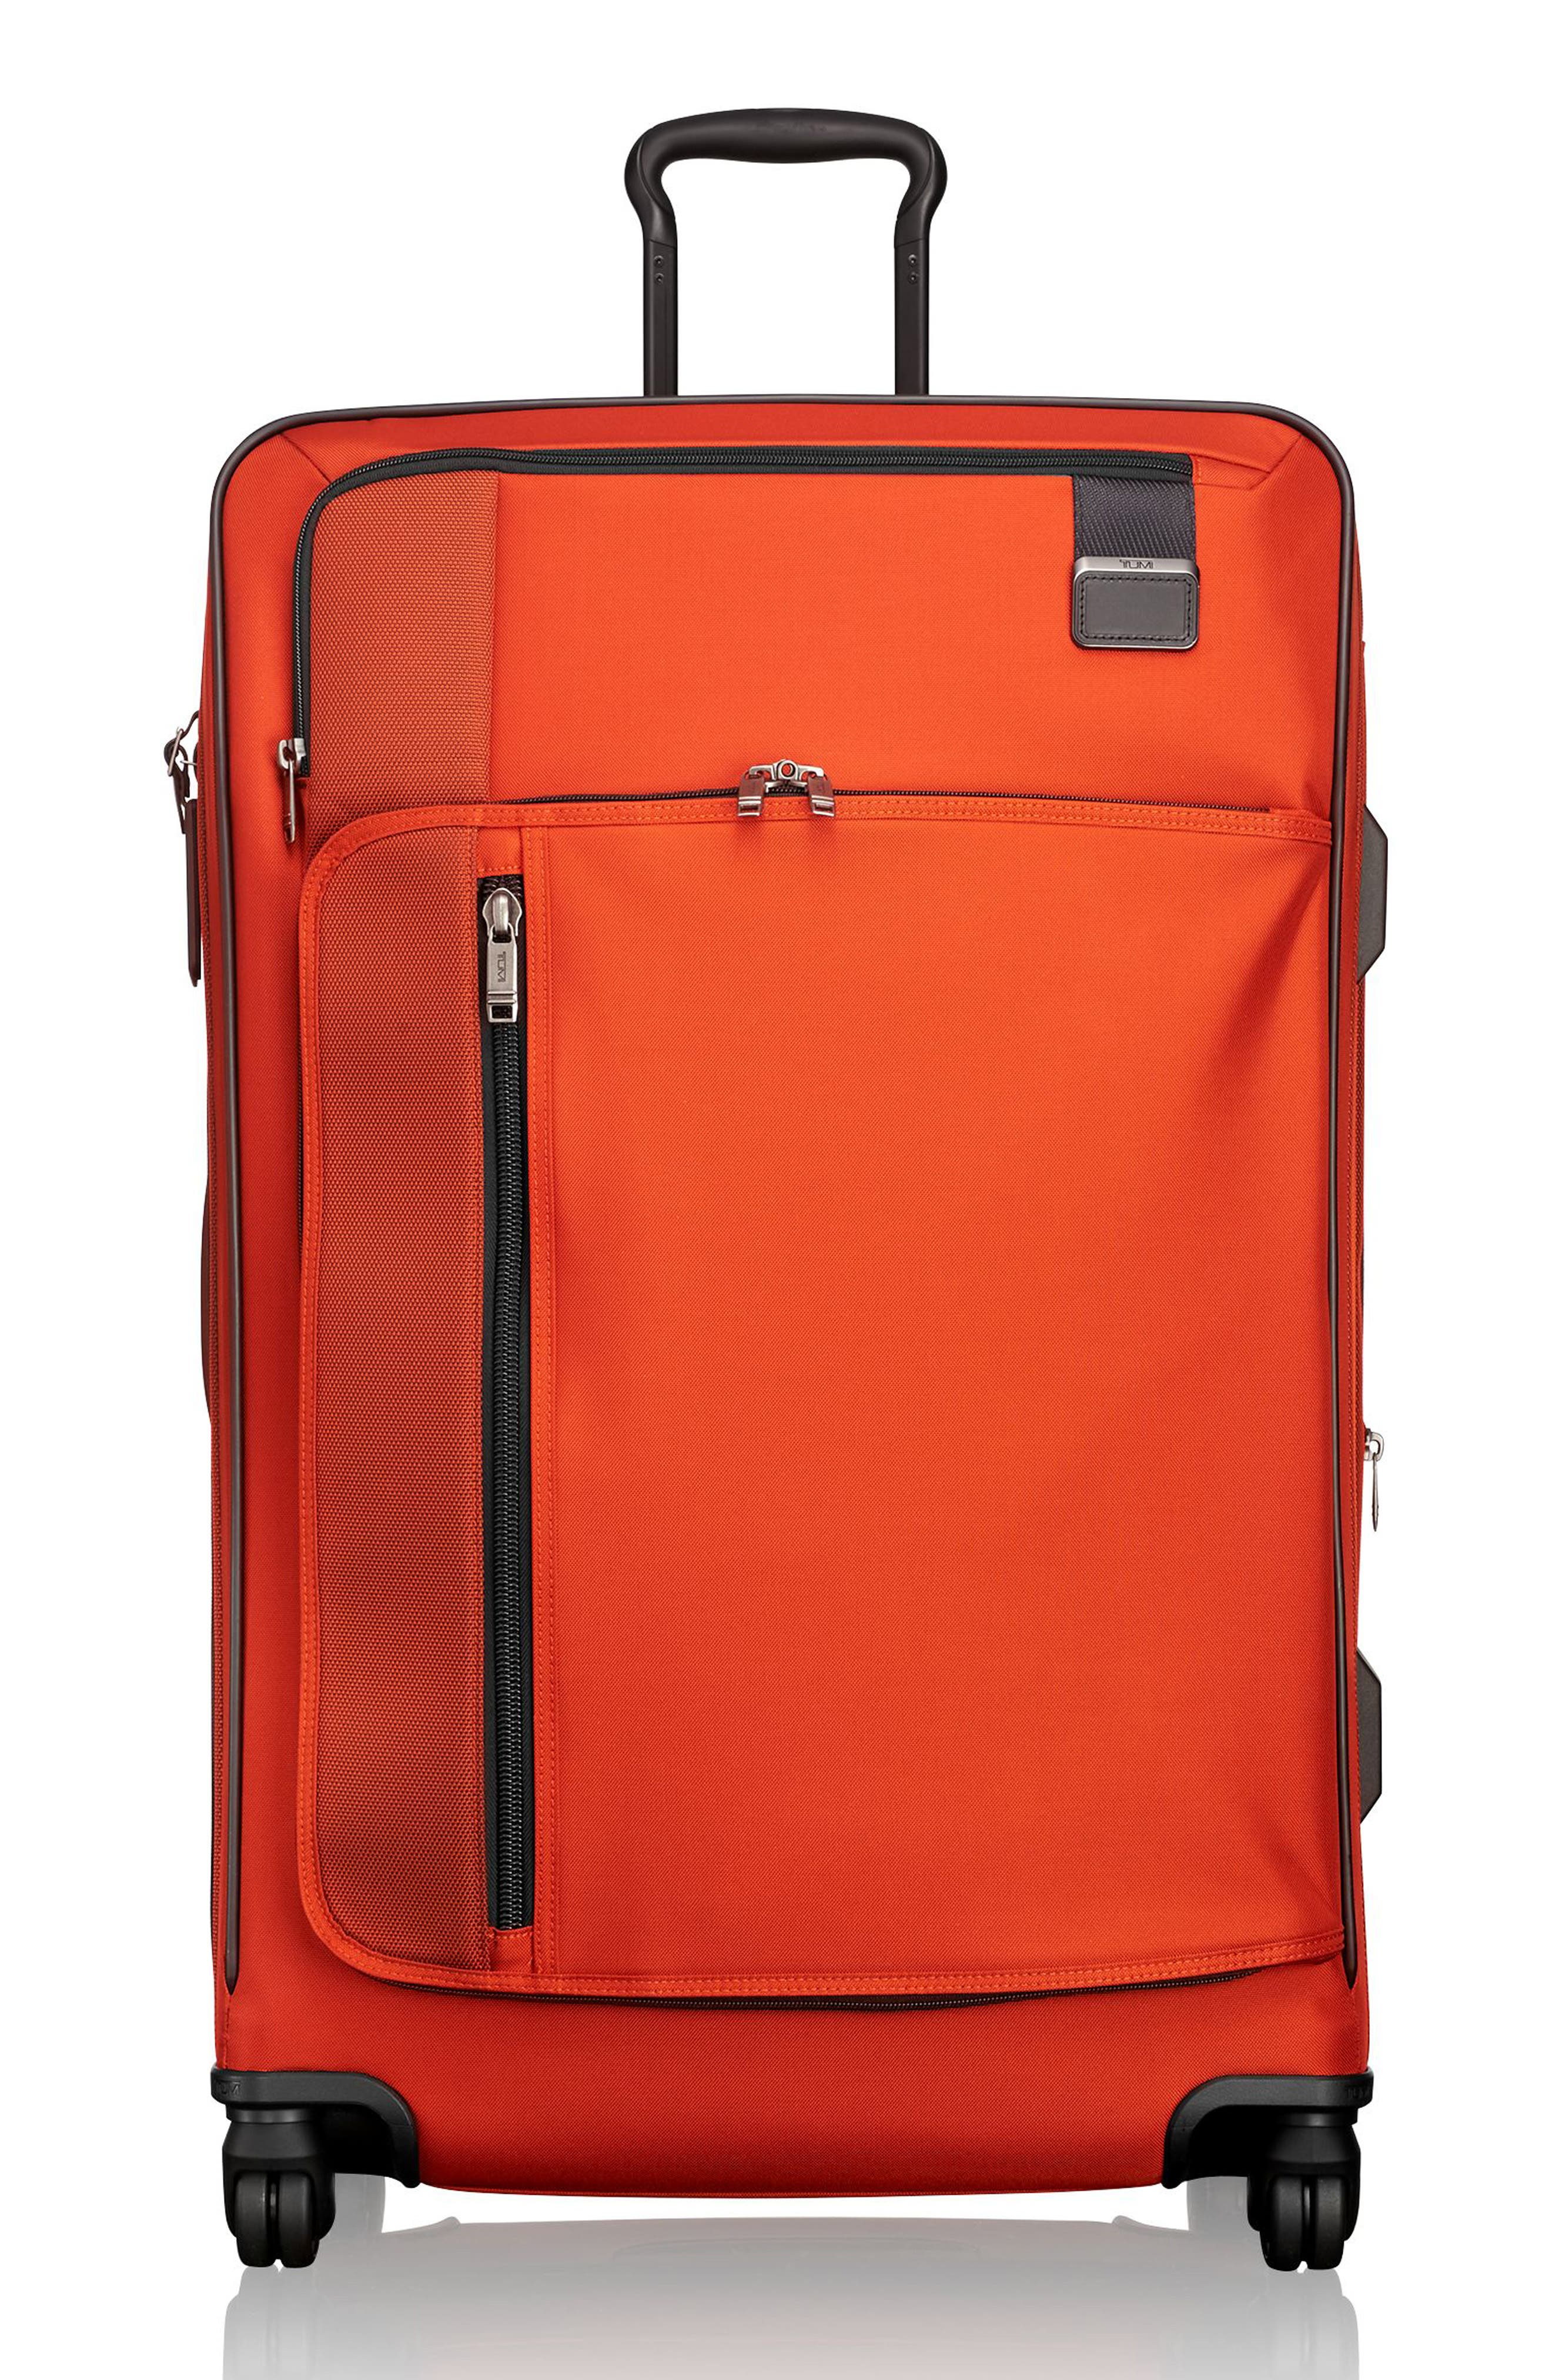 Tumi Merge - Extended Trip Expandable Rolling Luggage